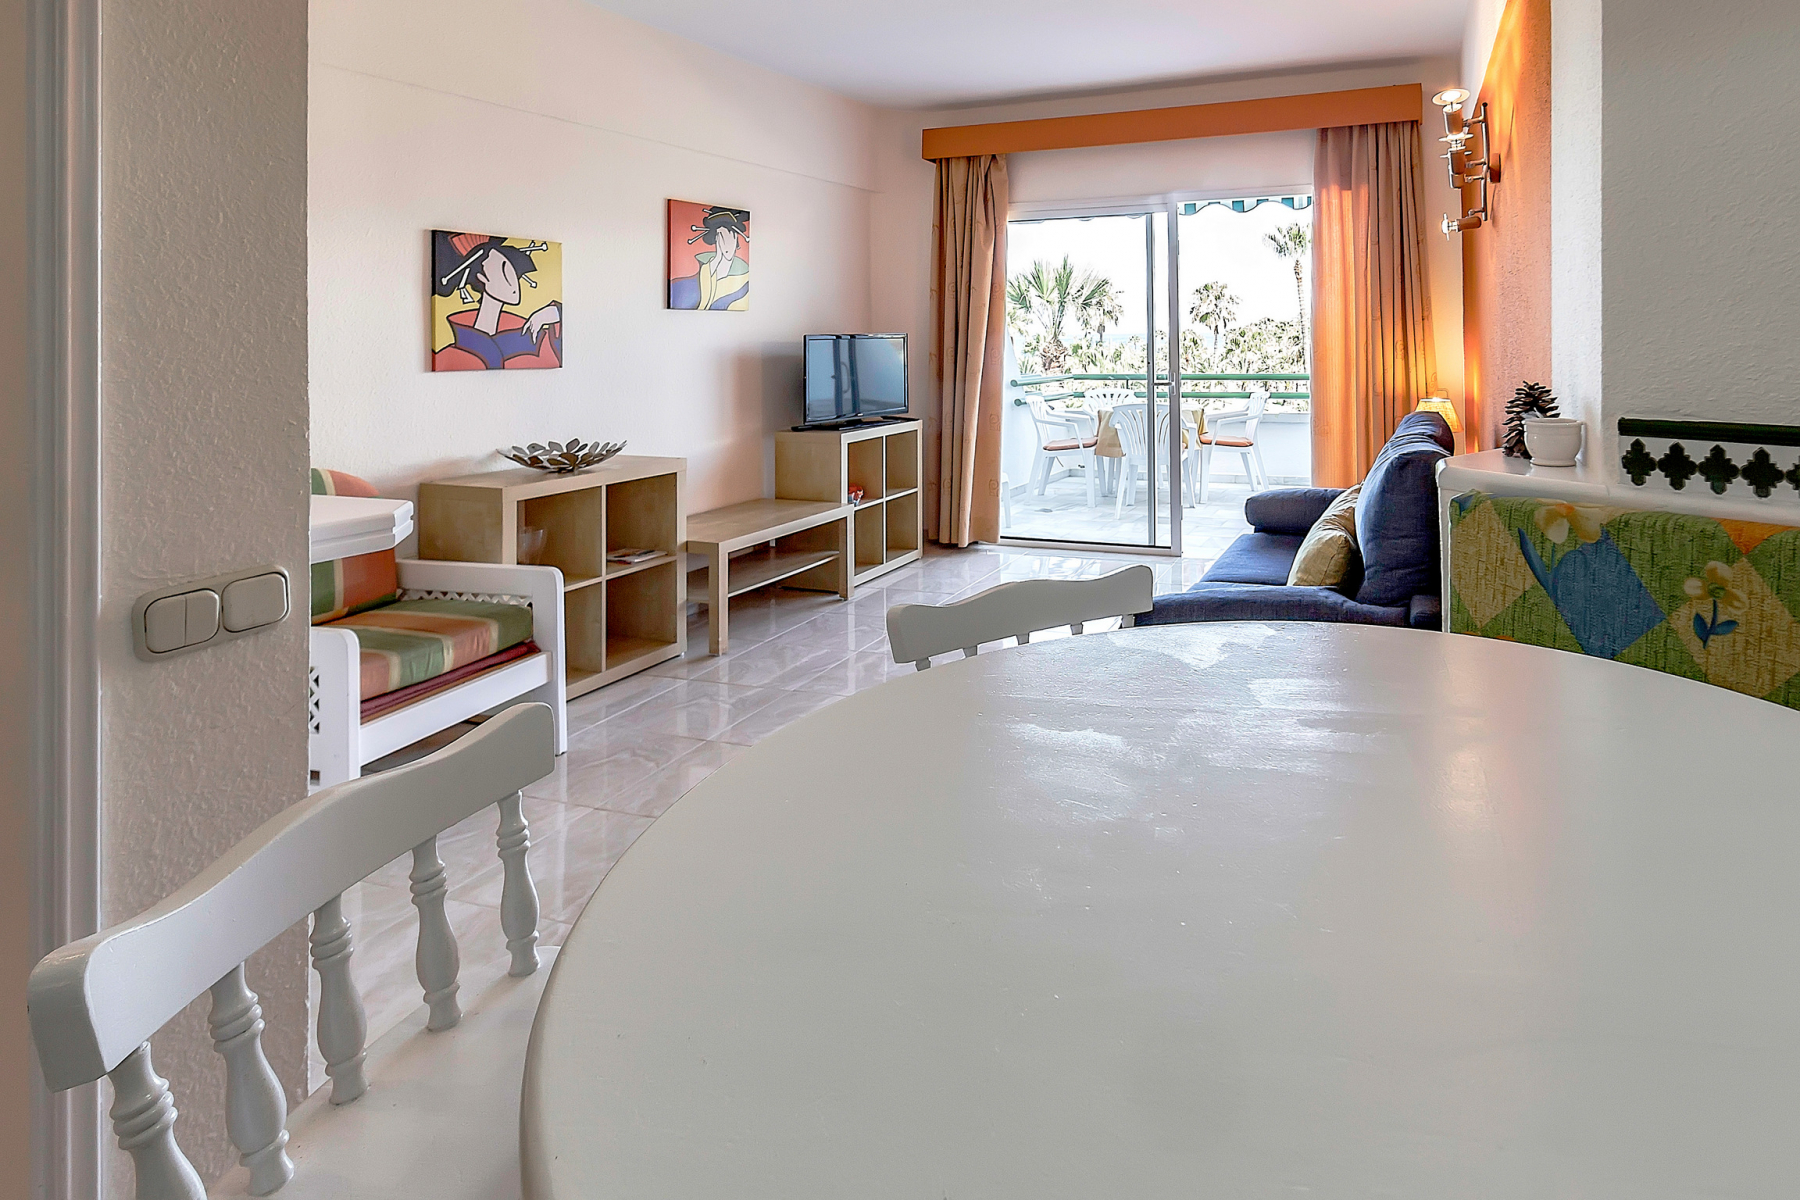 Properties for Sale in Tenerife, Canary Islands, Spain | SylkWayStar Real Estate. Lovely 1 Bedroom Apartment - Altamira. Image-25823